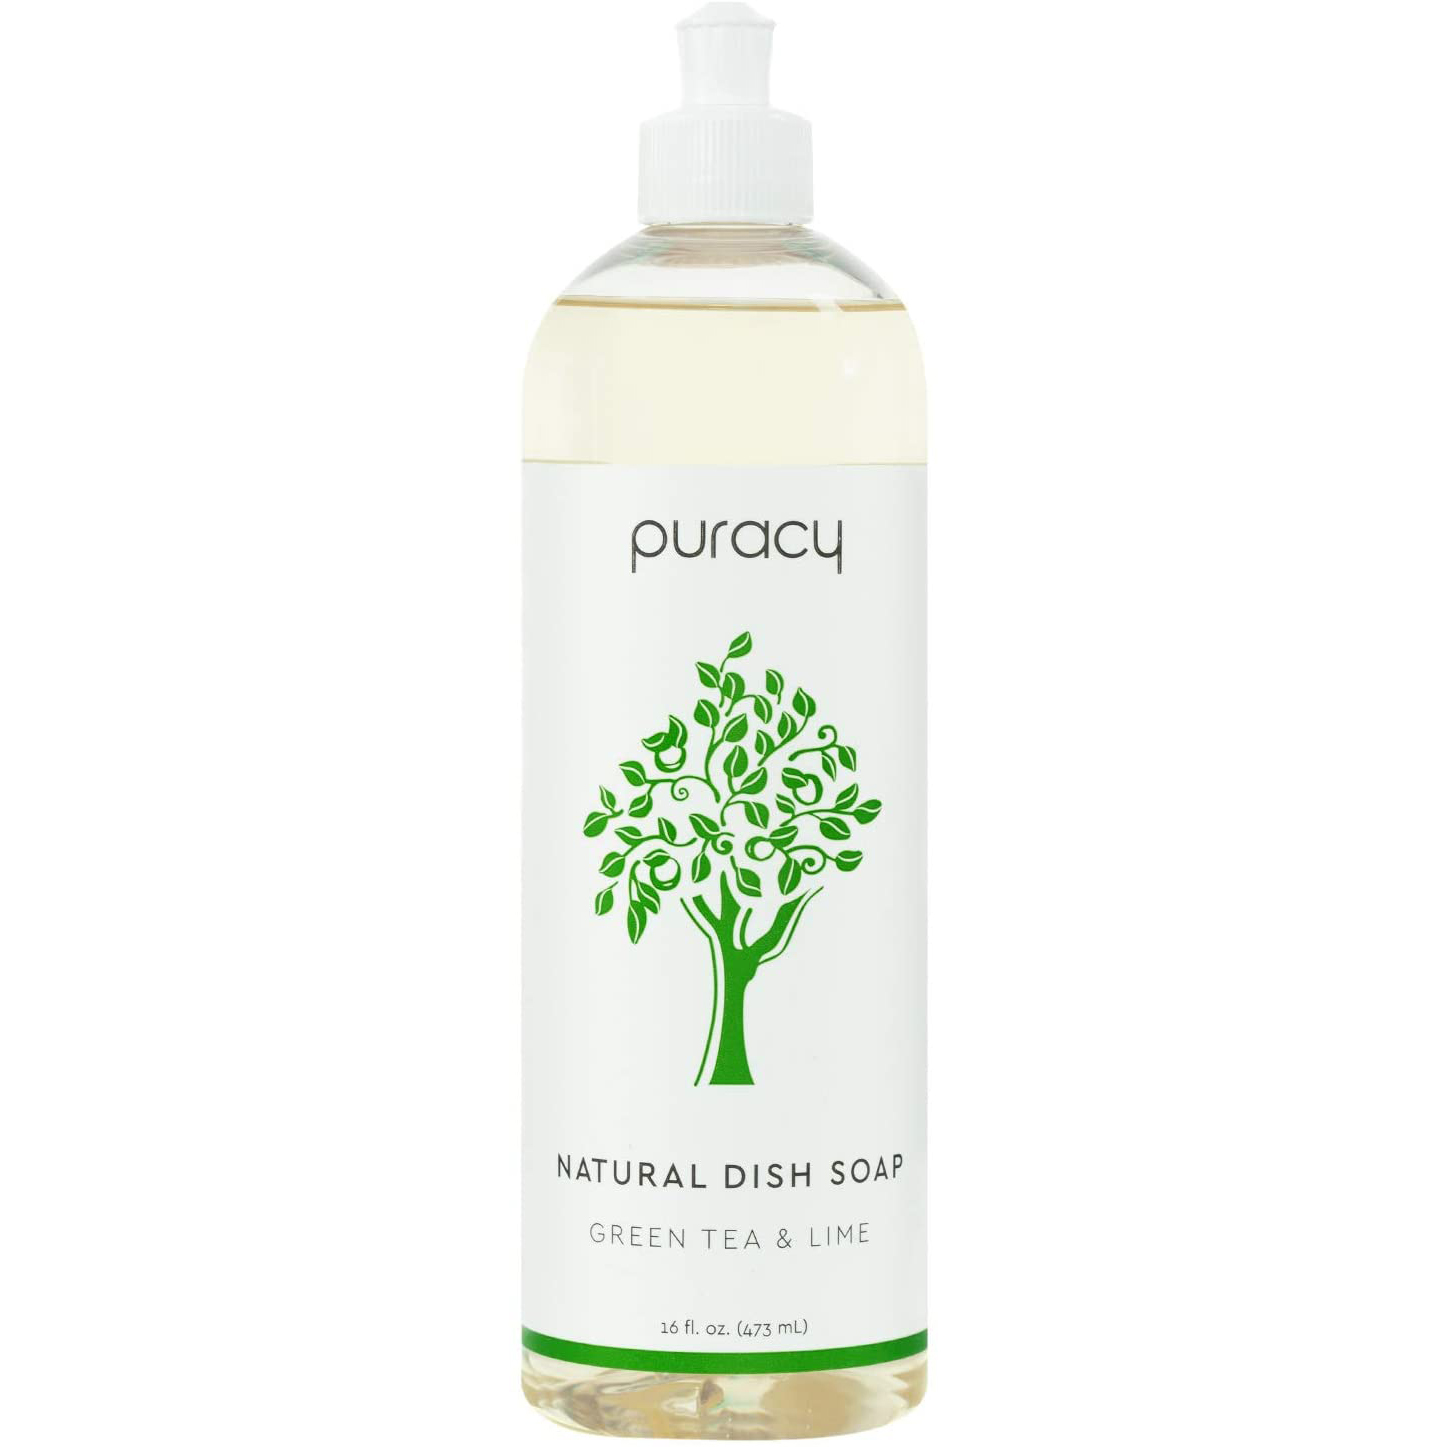 Puracy Natural Dish Soap on a white background